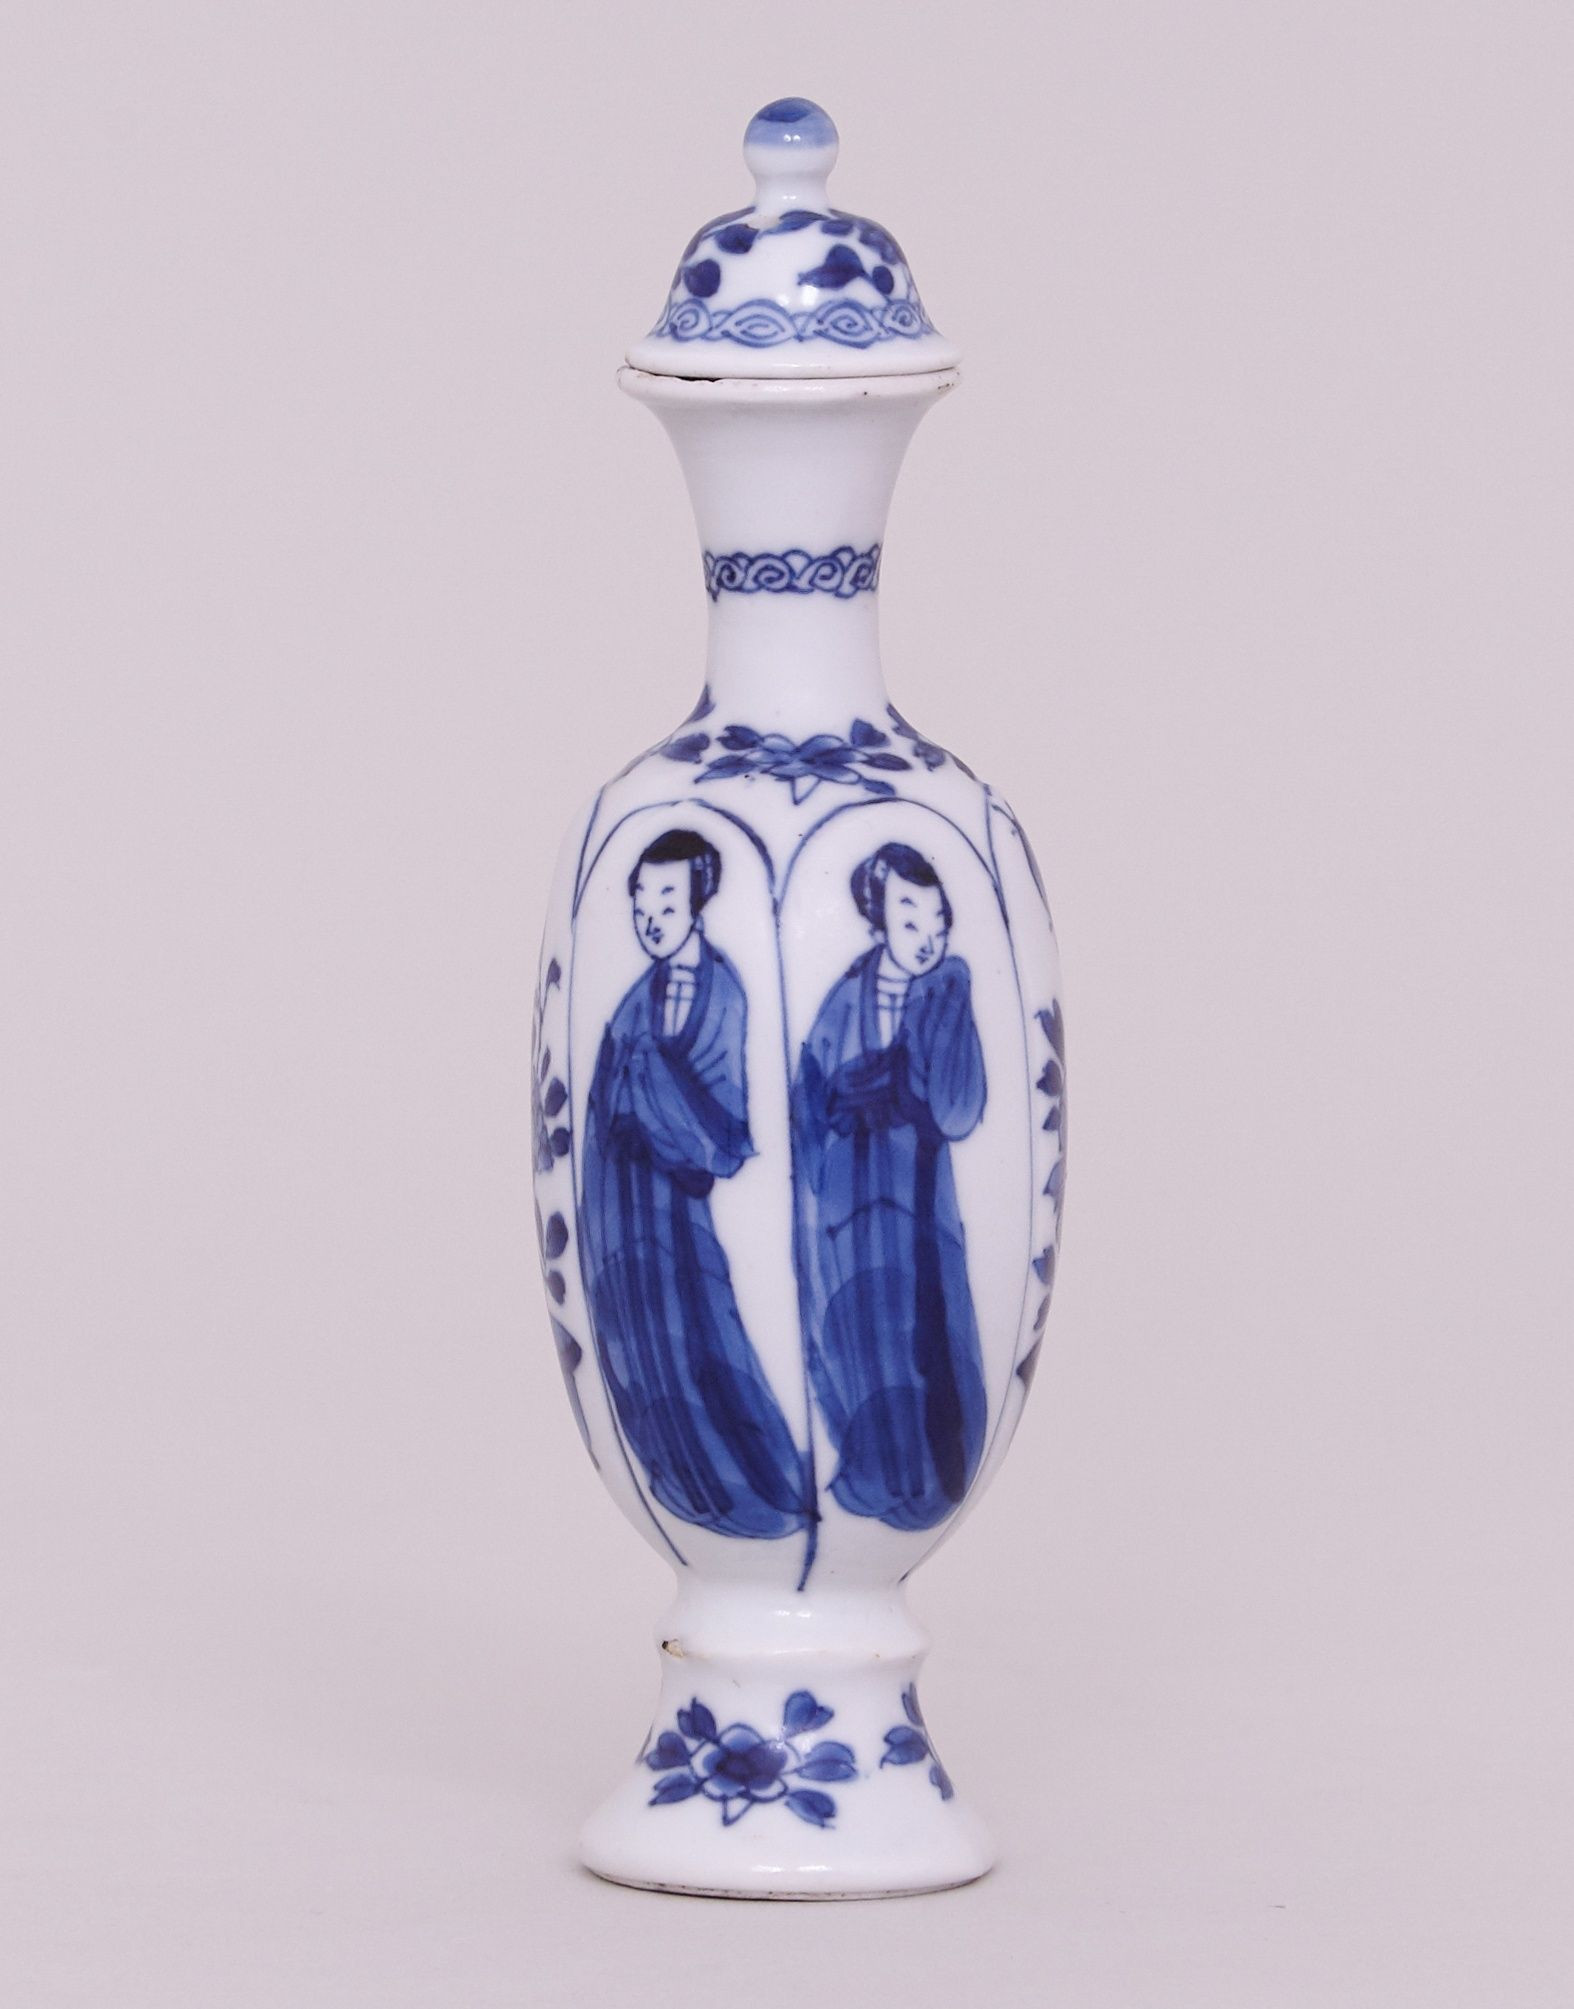 japanese dragon vase of large white ceramic vase elegant a chinese kangxi blue and white intended for large white ceramic vase elegant a chinese kangxi blue and white miniature vase and cover kangxi